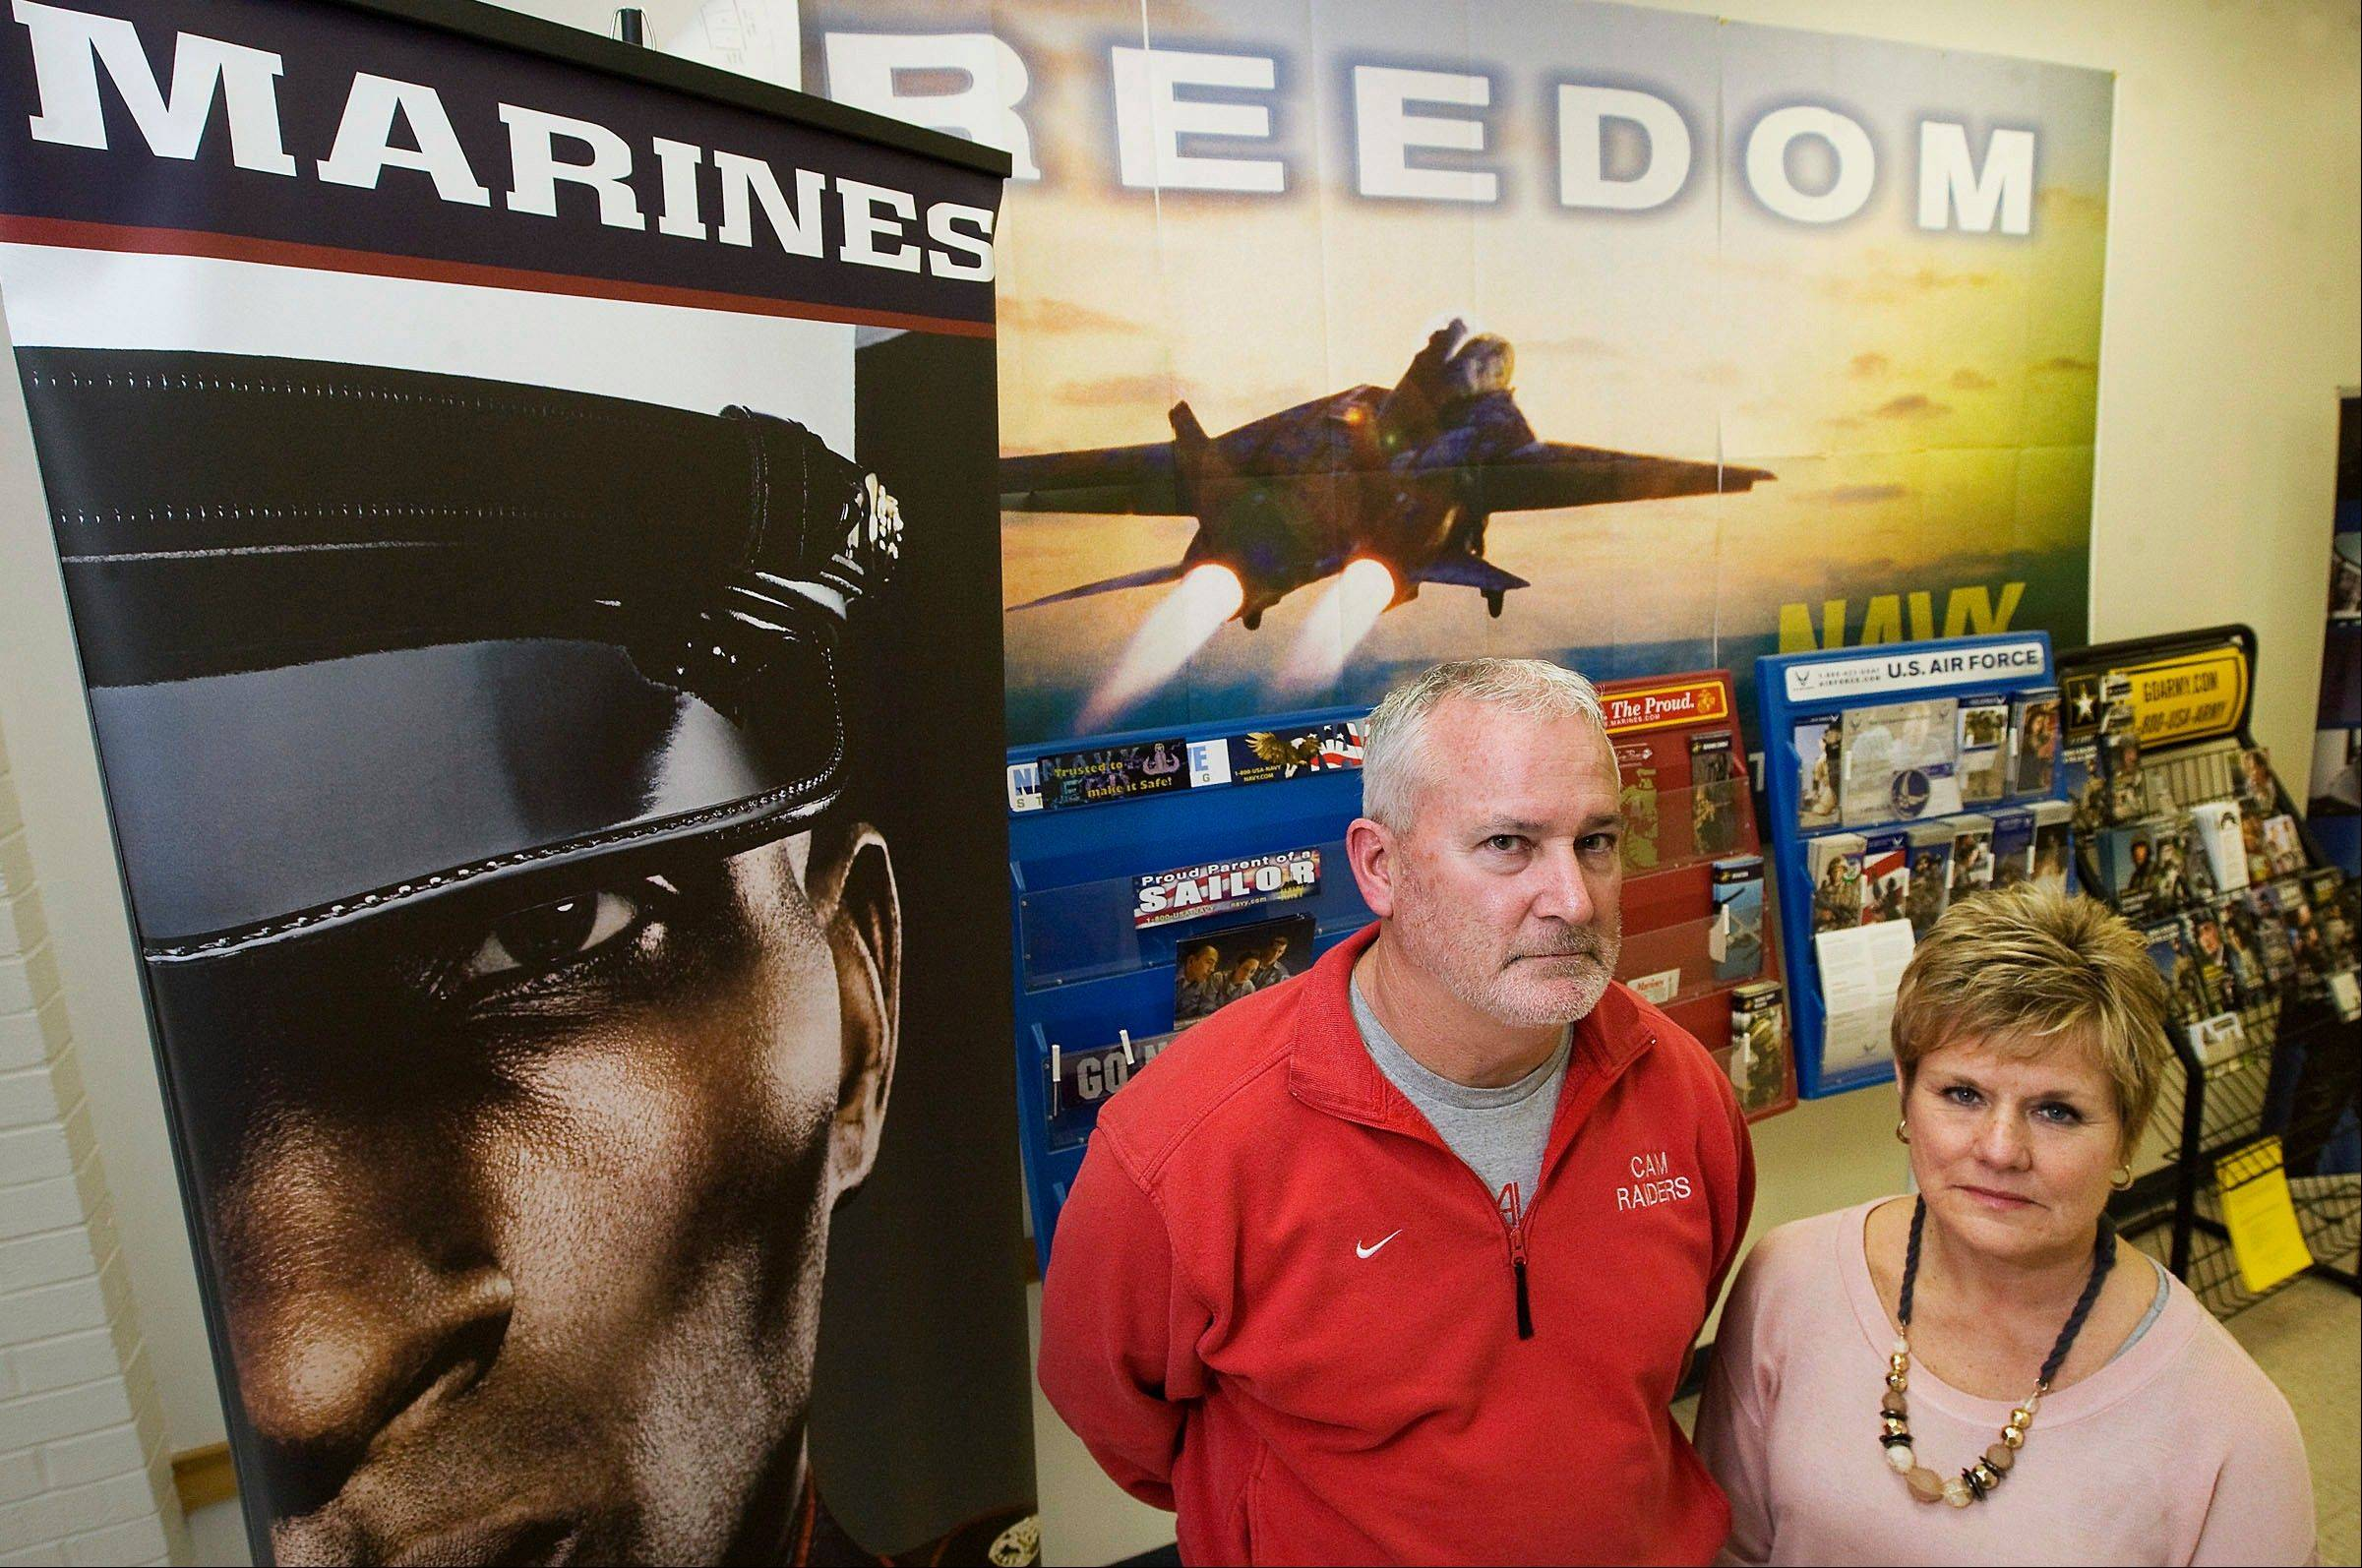 Mike Conlin and his wife, Shawn Conlin, of Moweaqua in Decatur. The couple are heading to boot camp for a week to get a taste of what it�s like to be Marines at the Marine Corps Recruit Depot in San Diego.